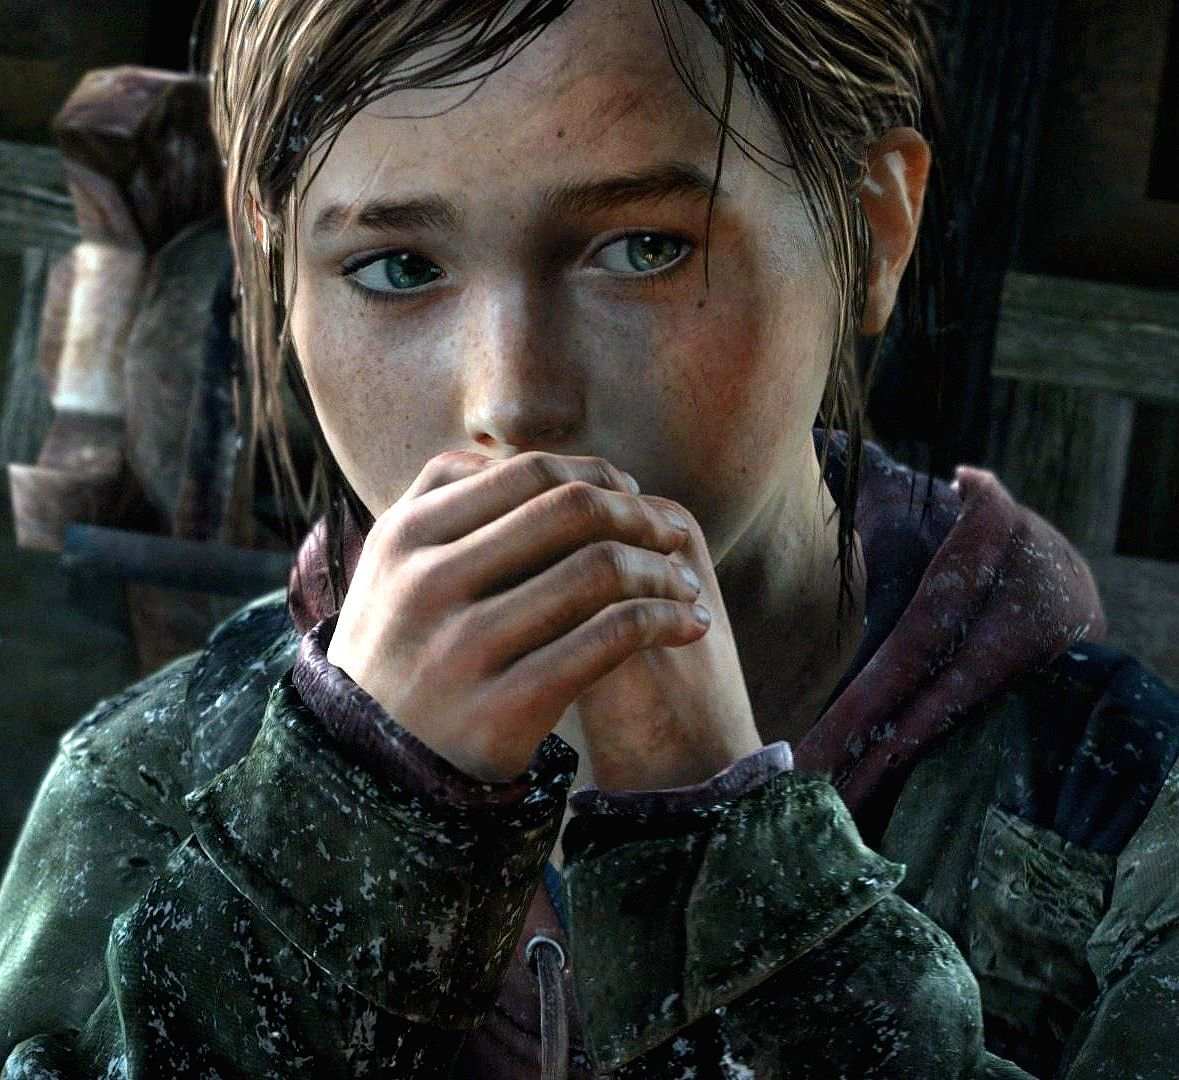 Ellie, from The Last of Us